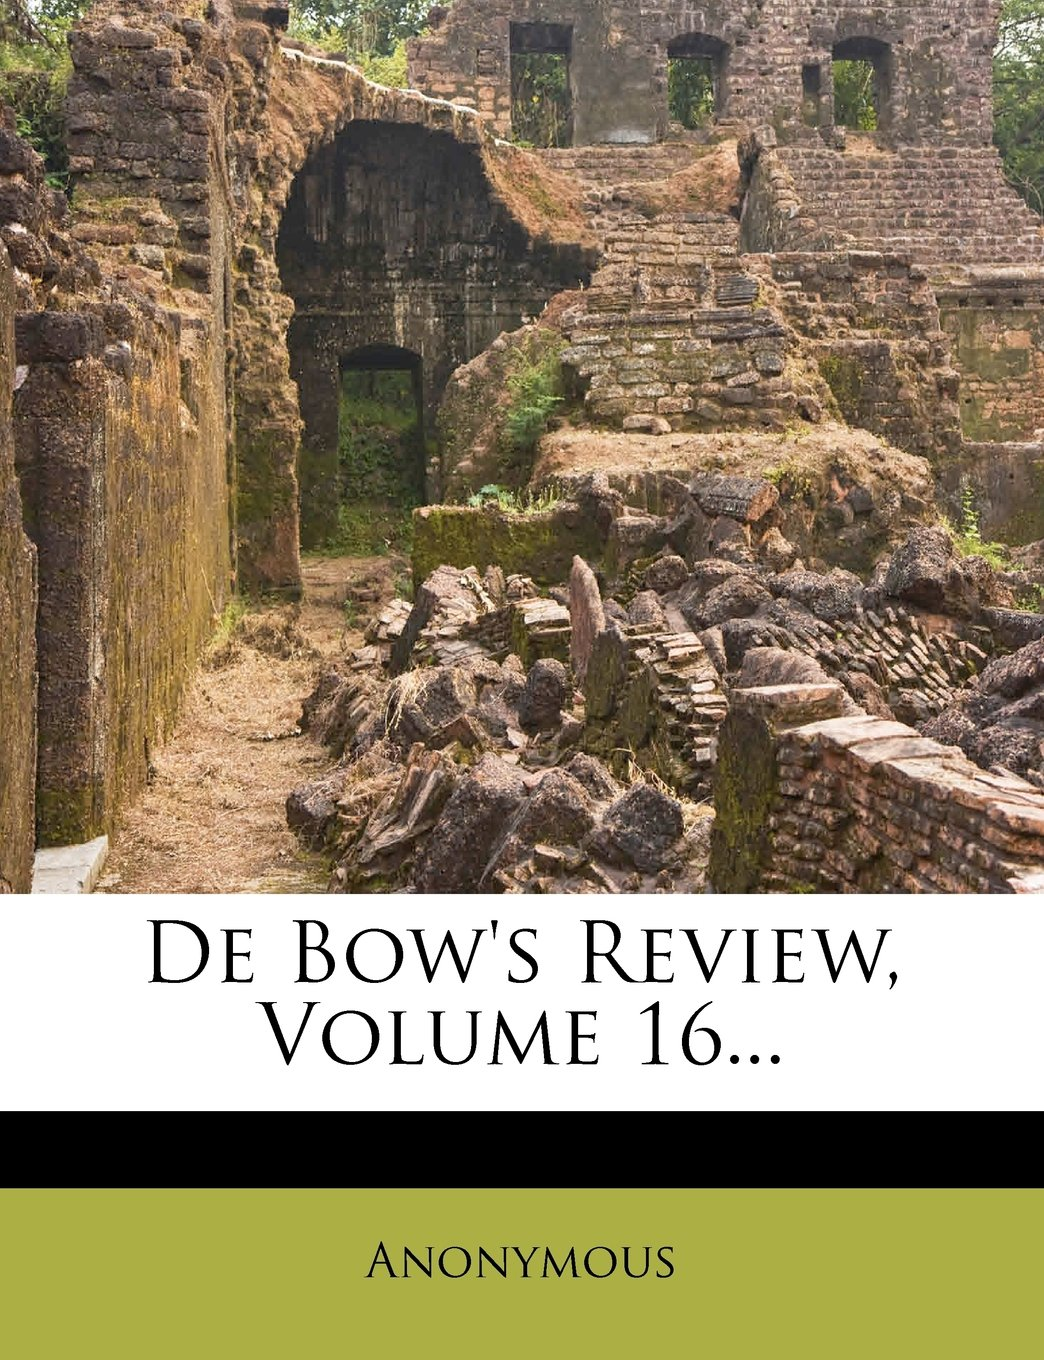 De Bow's Review, Volume 16... pdf